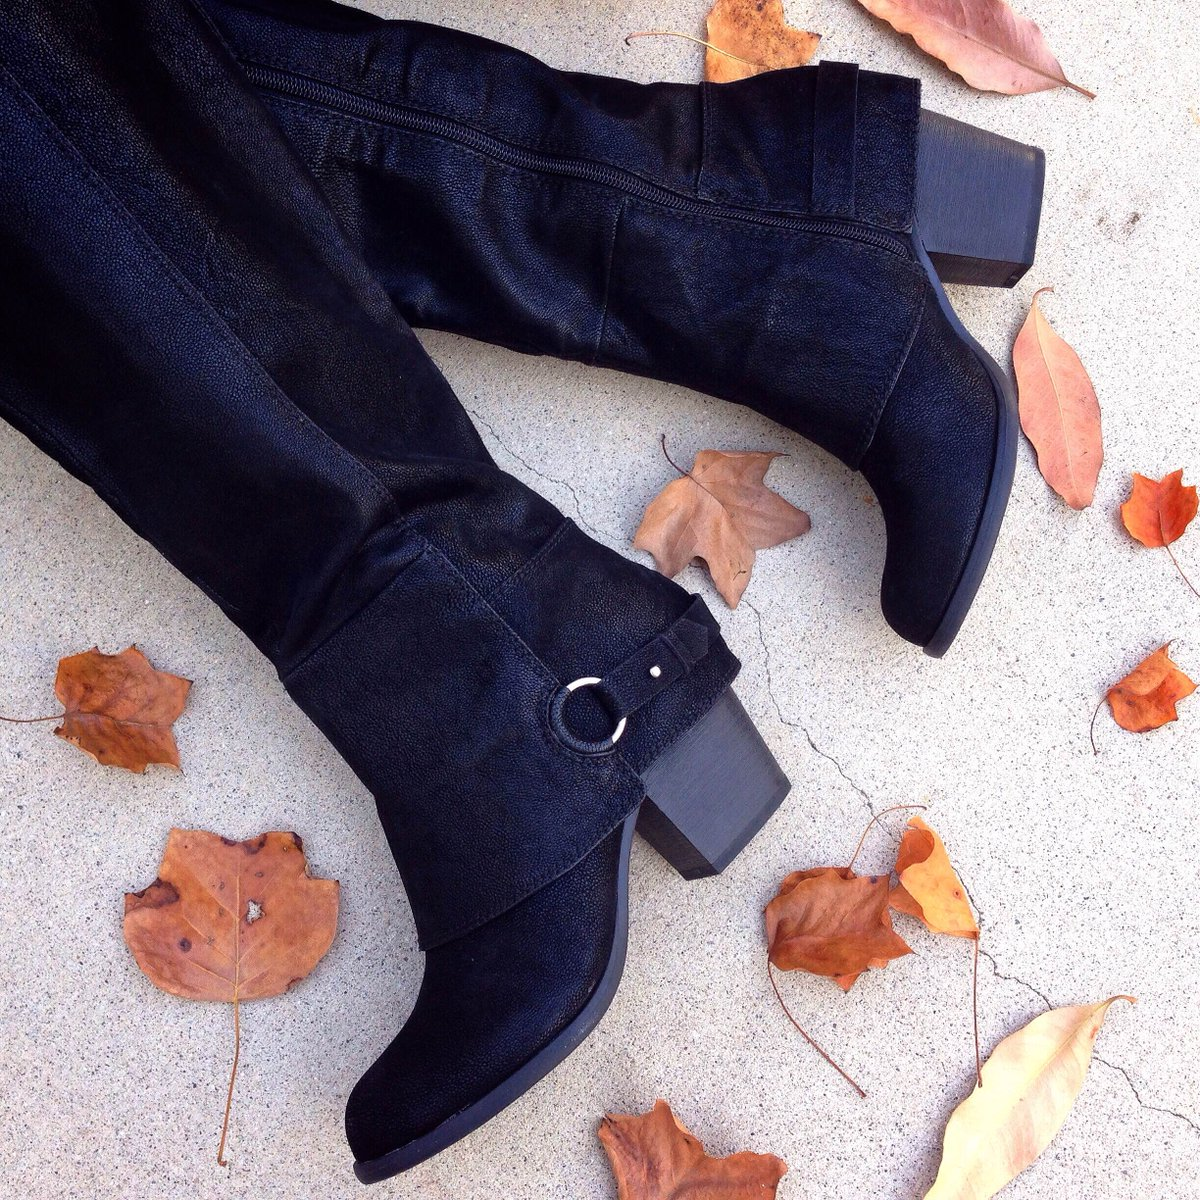 RT @FergaliciousBF: #FallInLove w/ #fall, if u haven't already, #thanksto fabulous #Fergalicious LEXY #boots! https://t.co/3LV1wKeEqZ https…